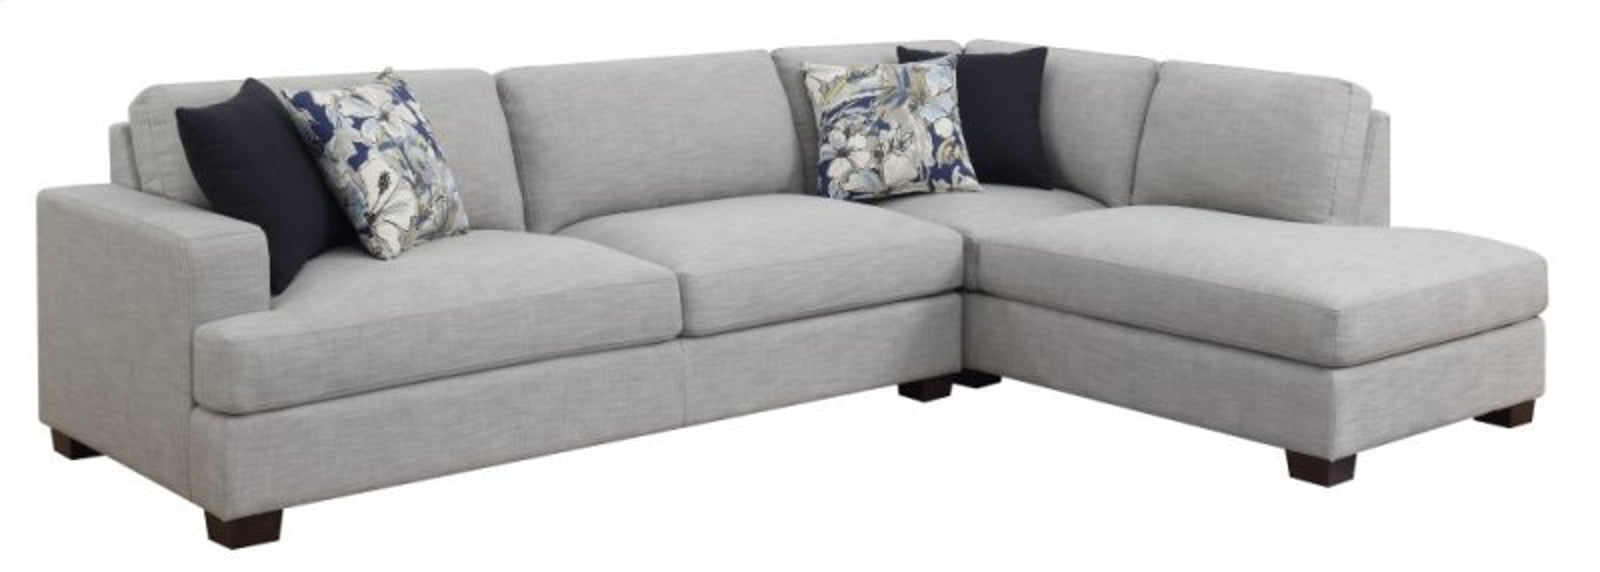 Emerald Home Vernon Sectional Loveseat in Granite Gray U4369-30-03